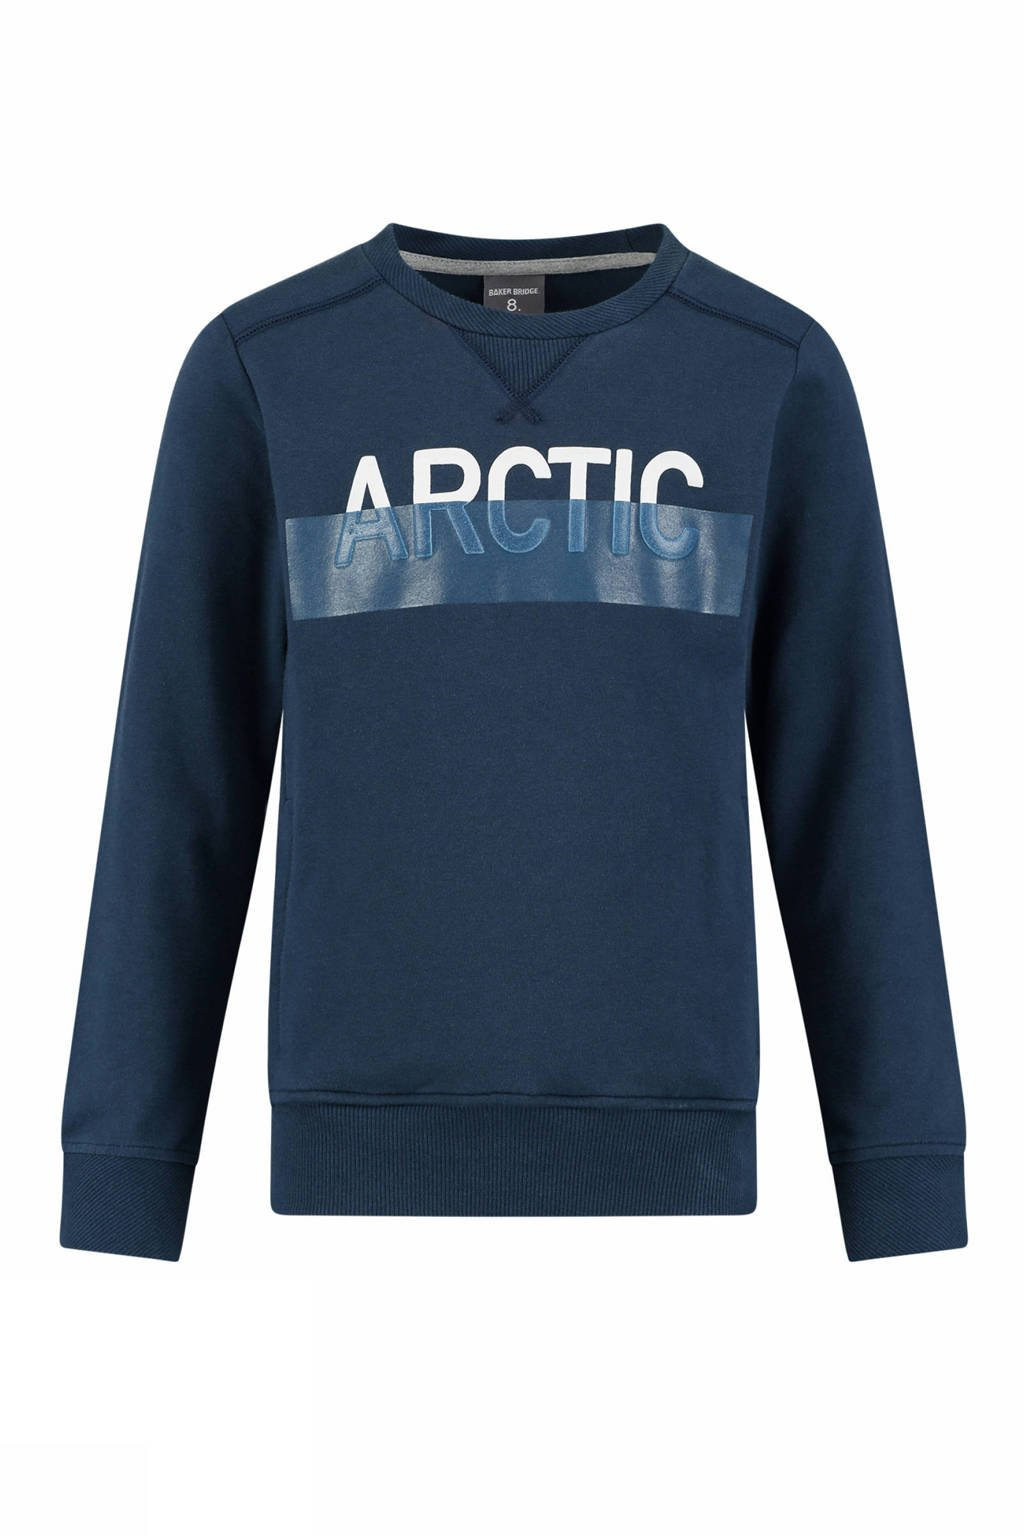 Baker Bridge sweater Karate met tekst blauw, Donkerblauw/wit